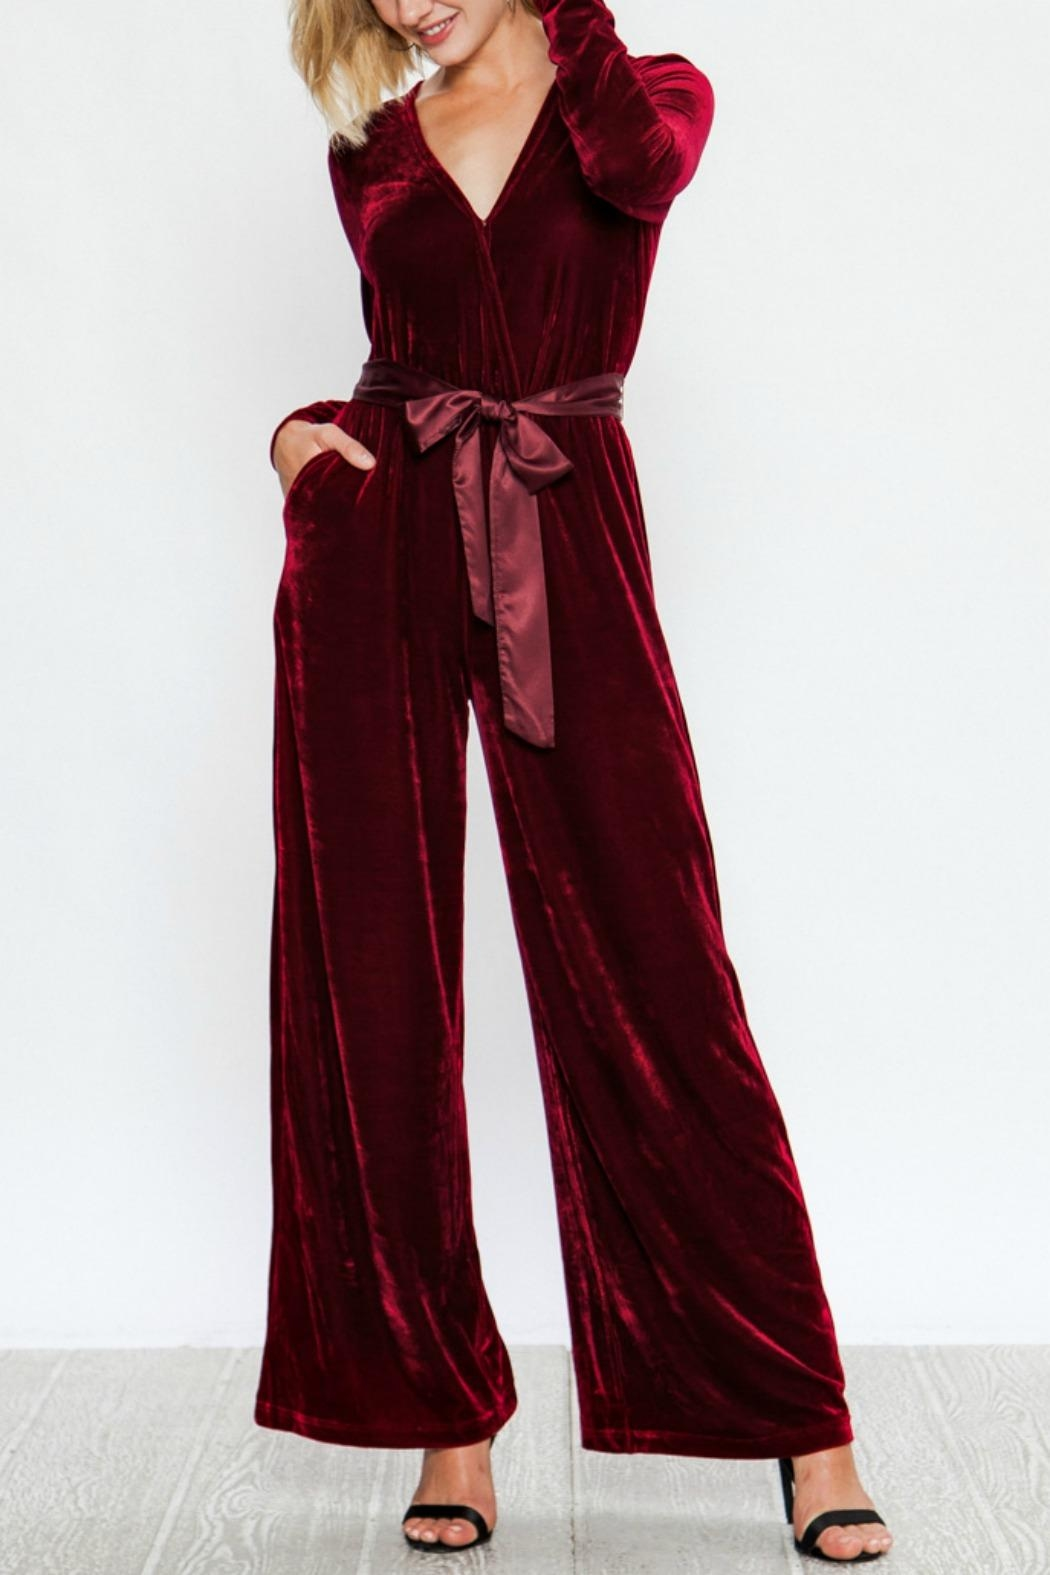 f8ed89a0cc2 A. Calin Classy Velvet Jumpsuit from Texas by BareTrees Boutique ...